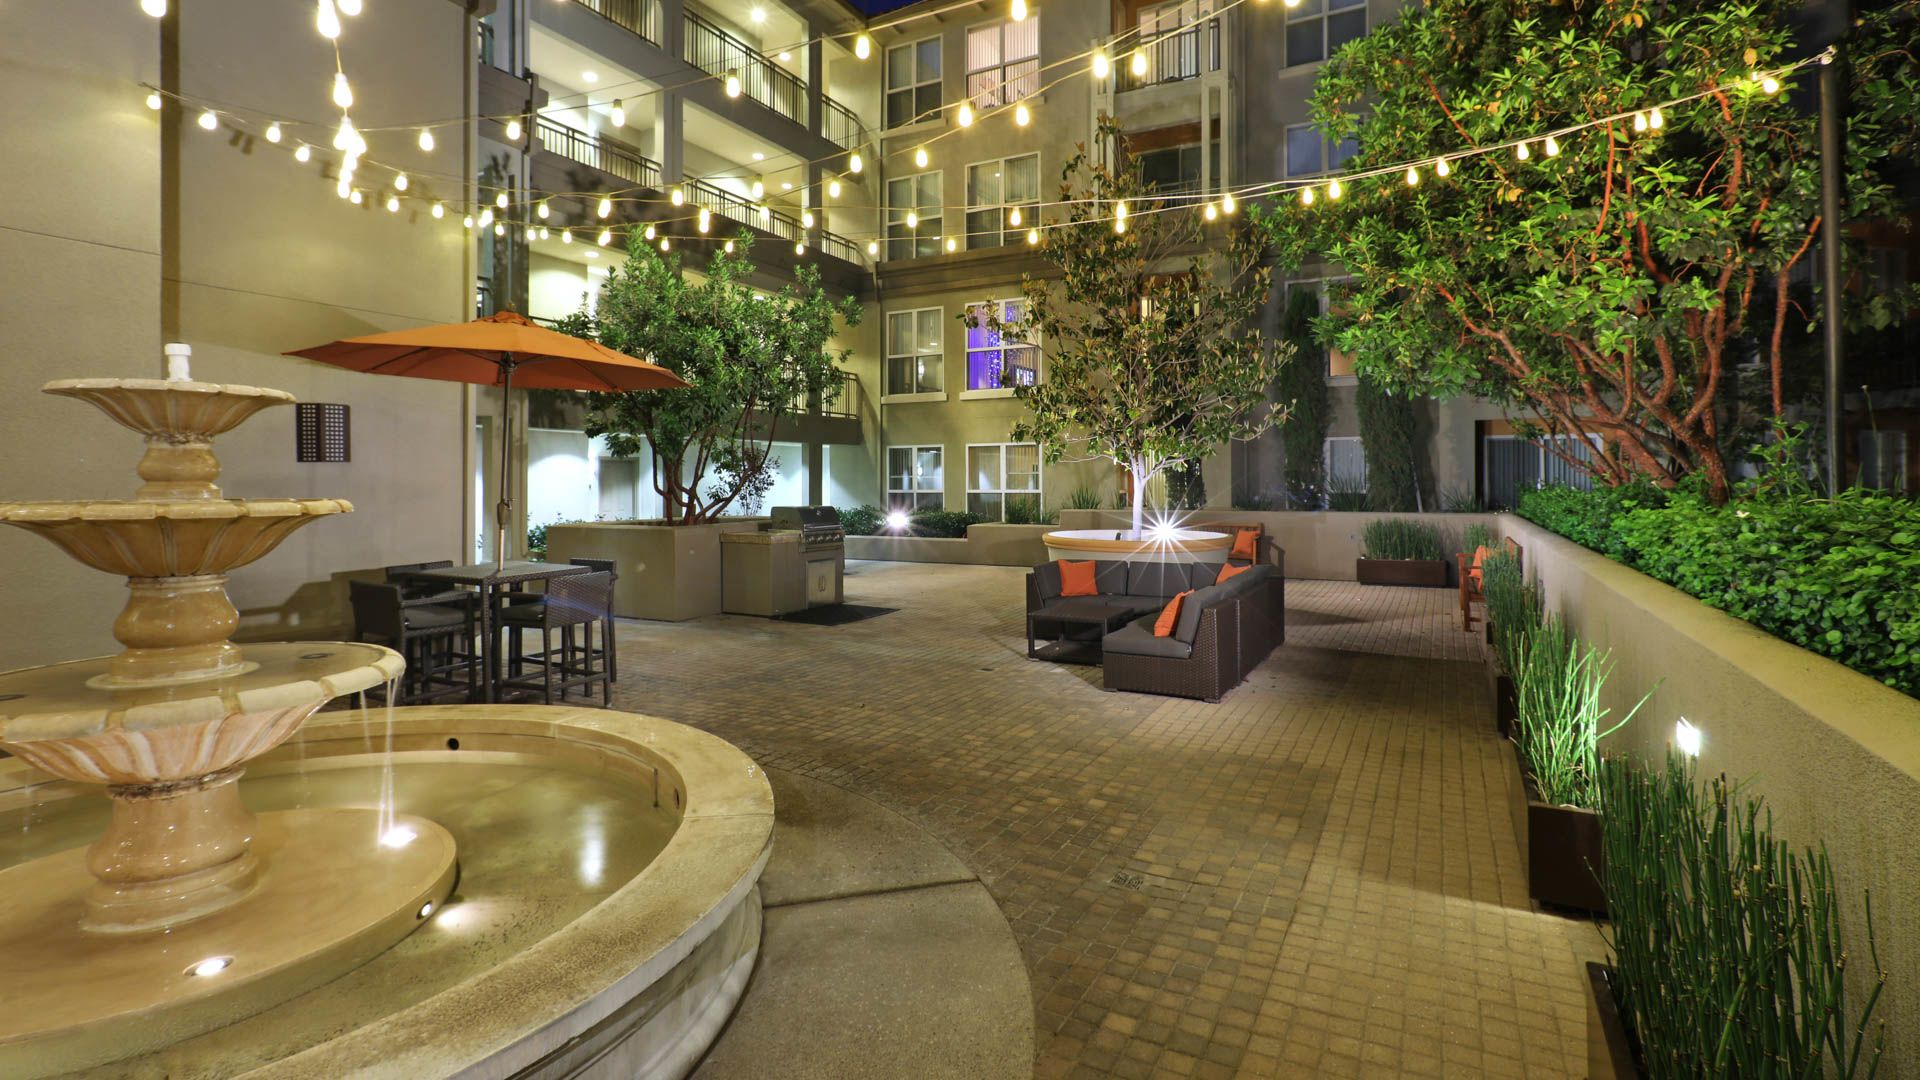 Acappella Pasadena Apartments - Community Courtyard with Fountain